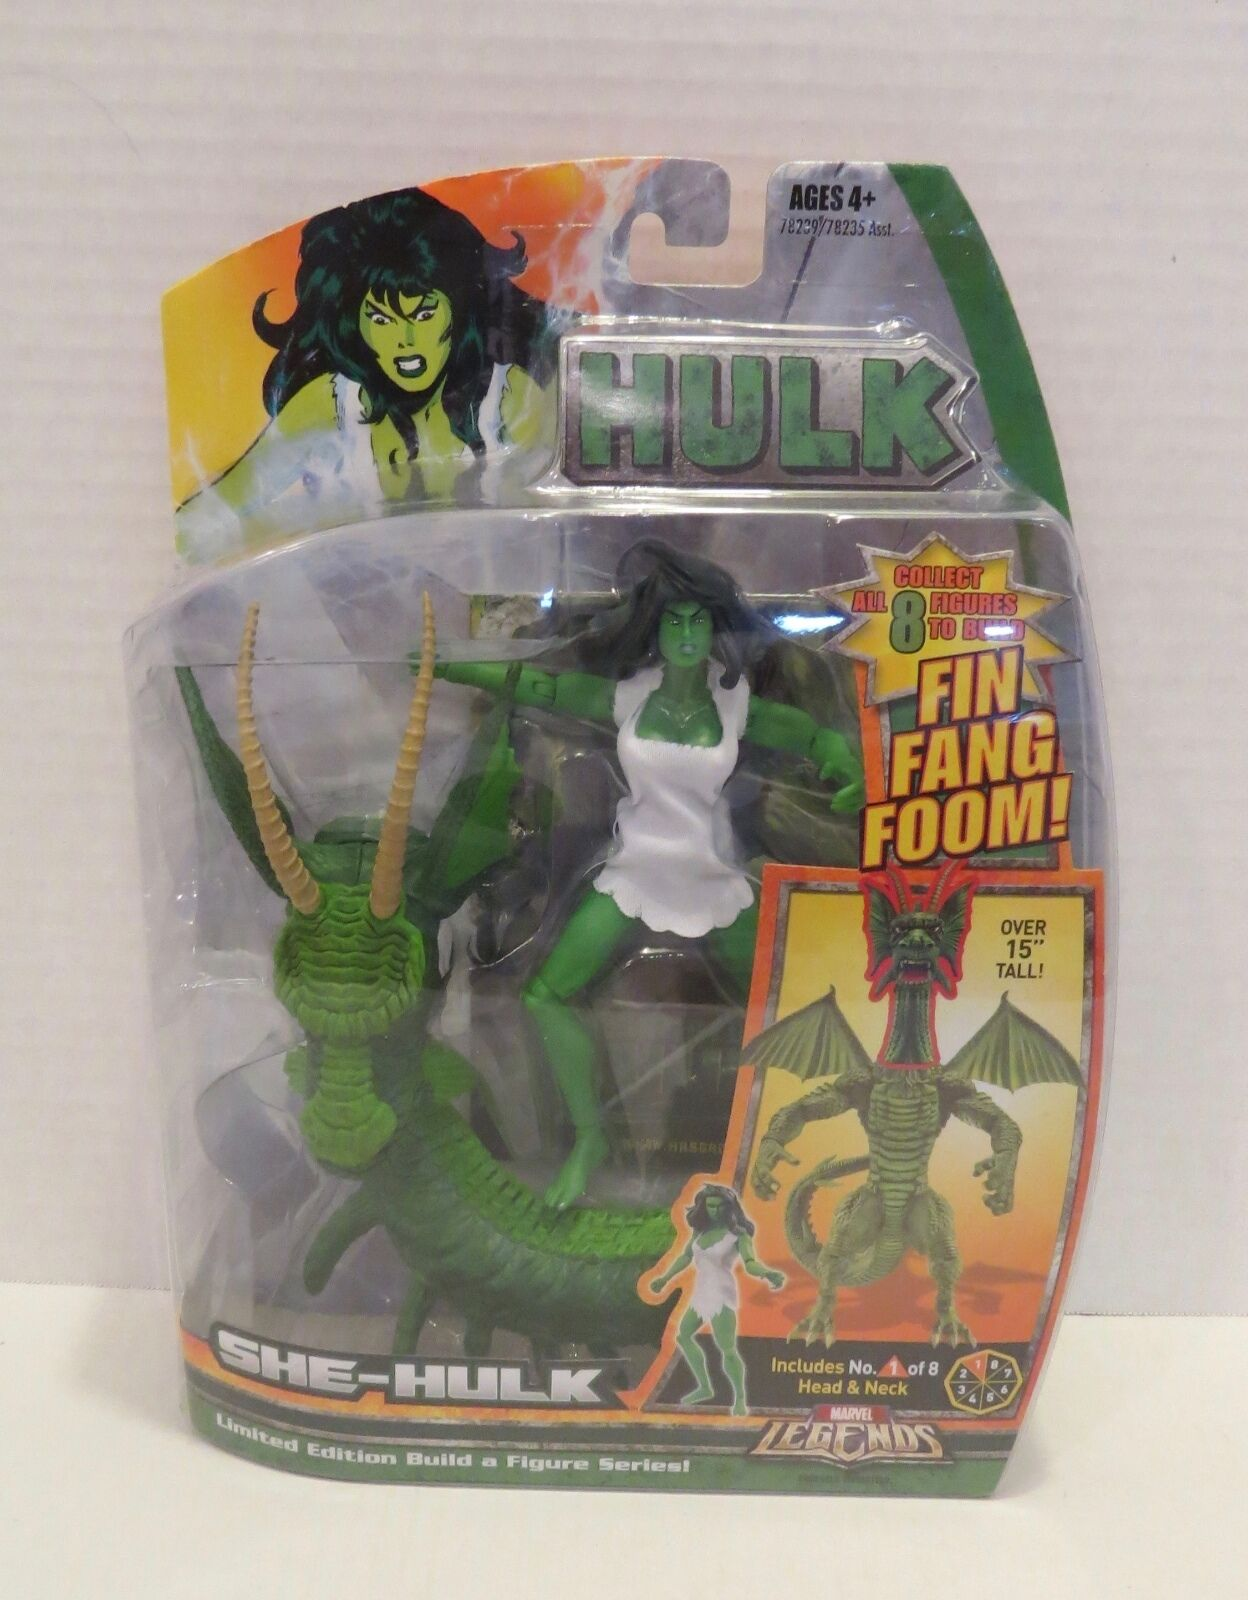 MARVEL LEGENDS SHE-HULK FIN FANG FOOM BAF SERIES Action Figure